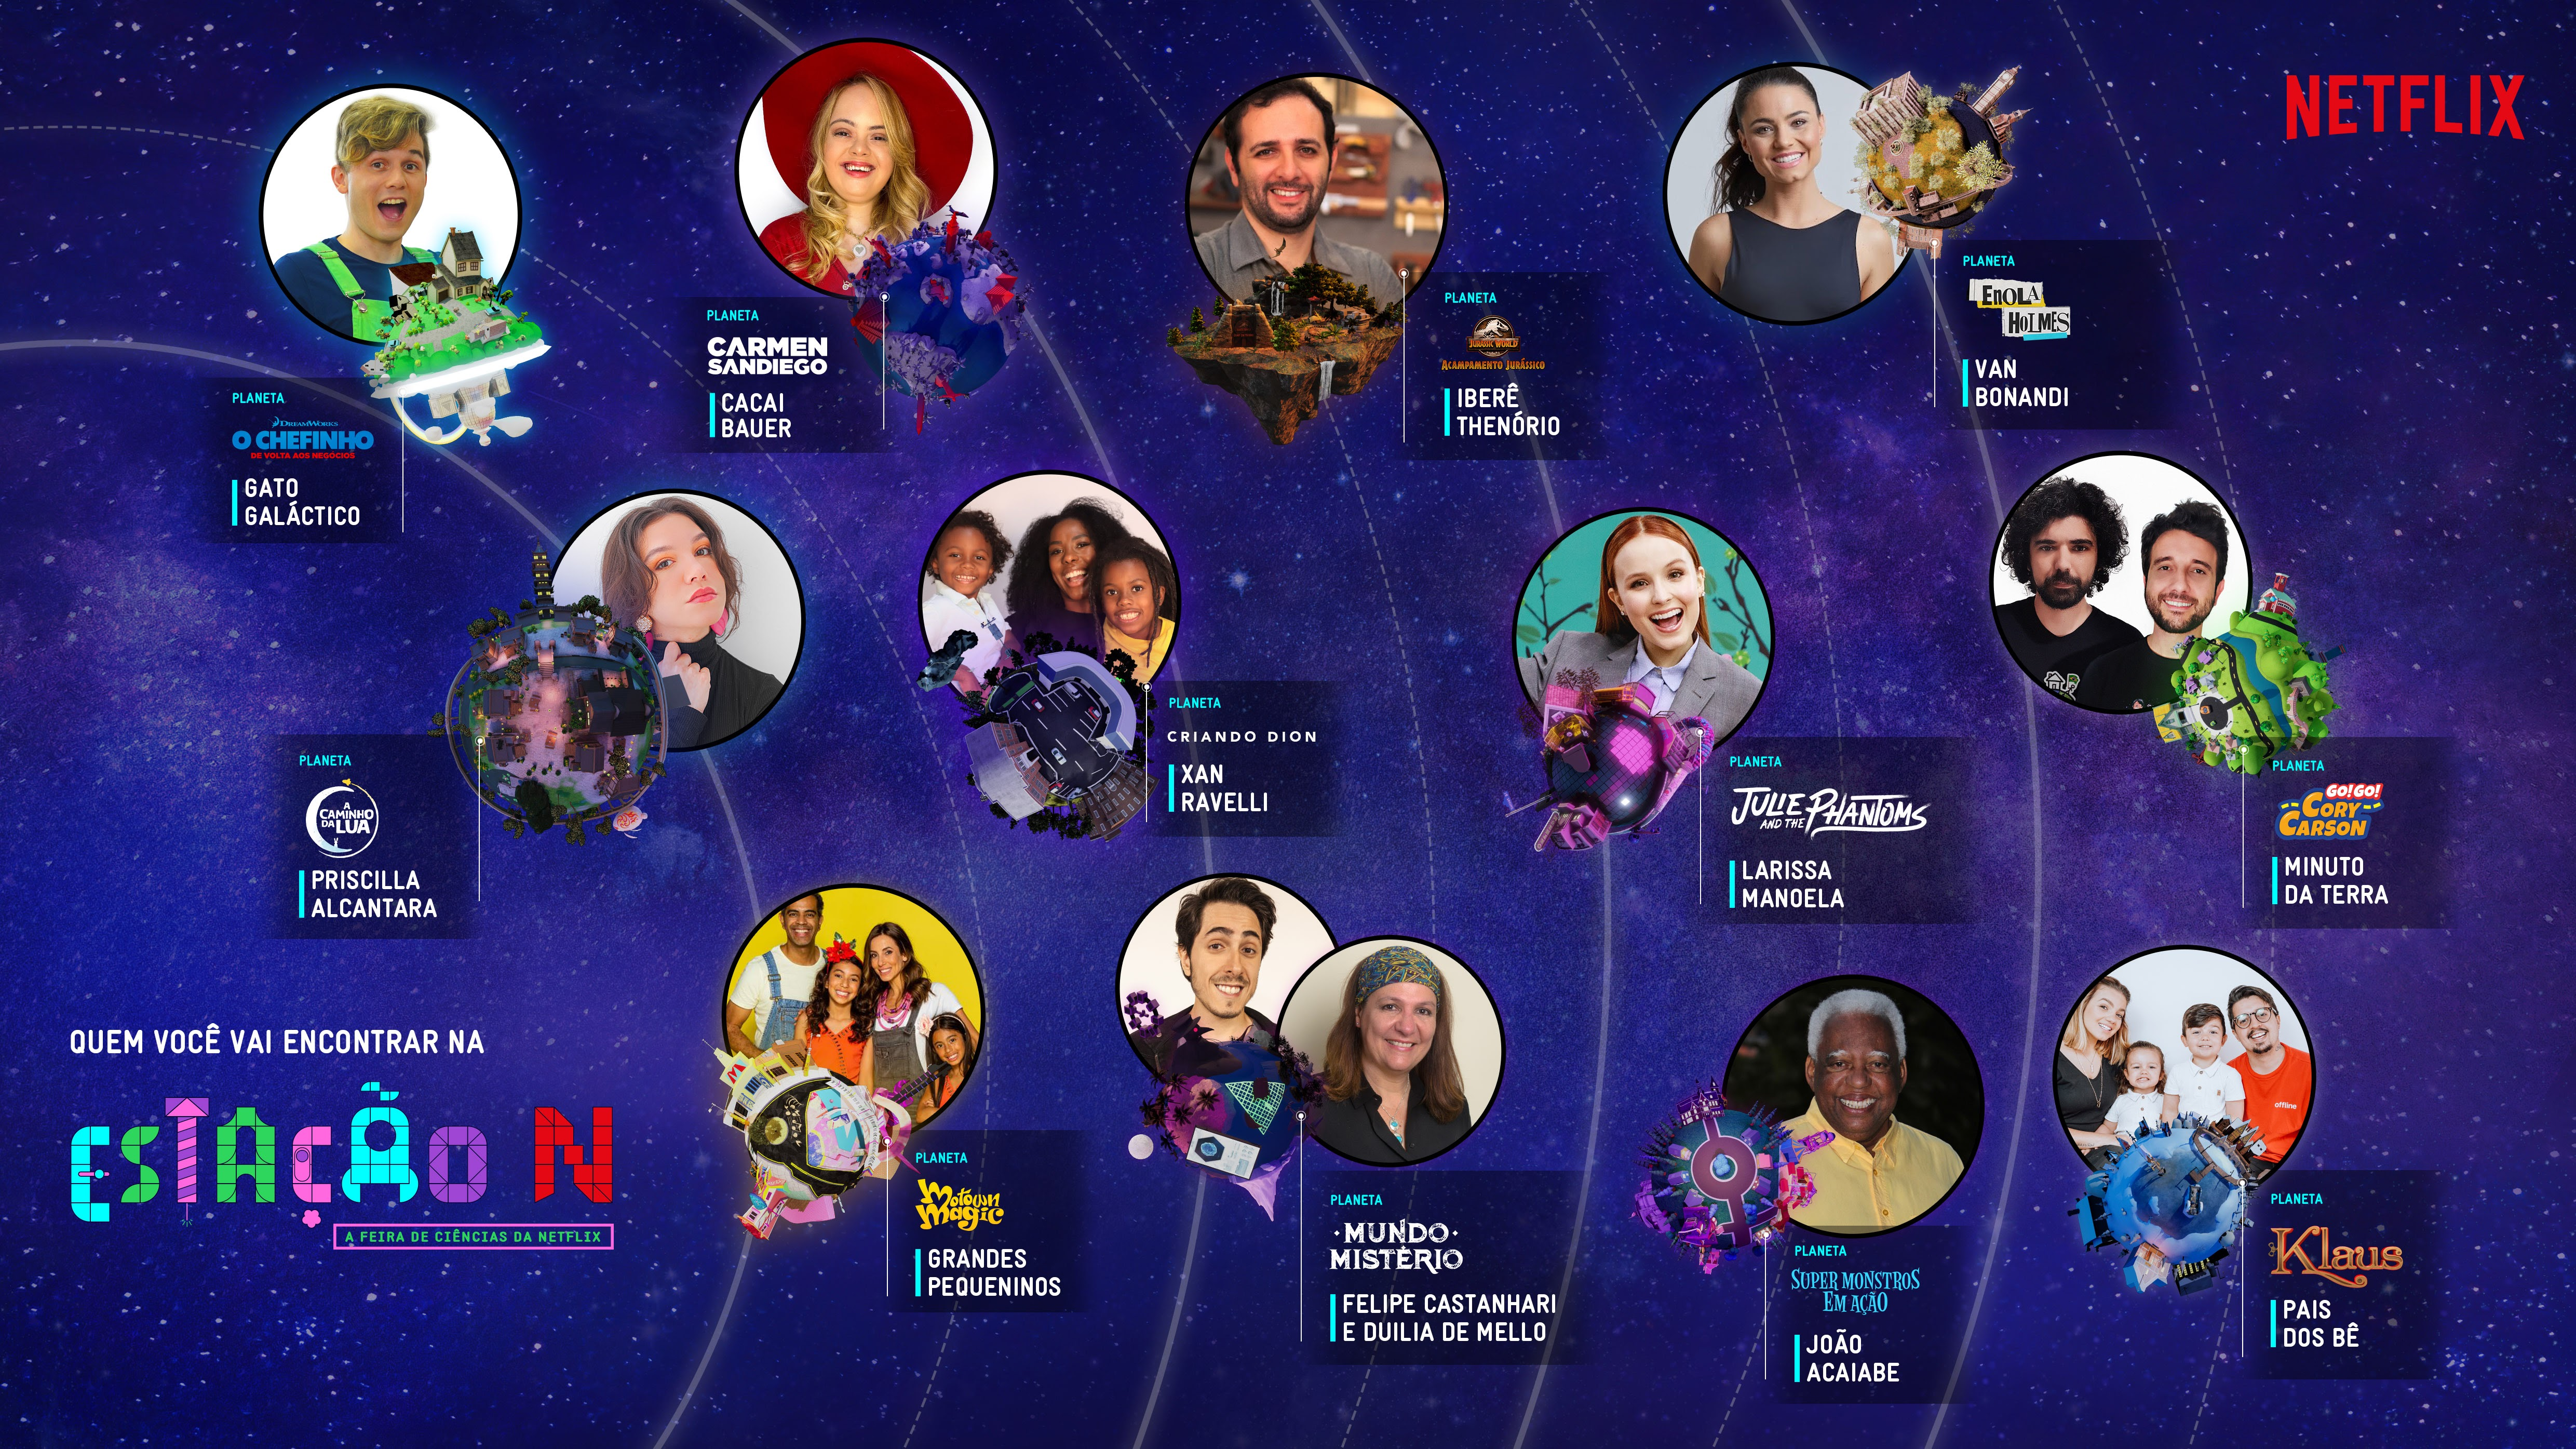 LIFTOFF CONFIRMED! ESTAÇÃO N - NETFLIX SCIENCE FAIR BRINGS TOGETHER TALENTS, INFLUENCERS AND LOTS OF FUN FOR THE WHOLE FAMILY